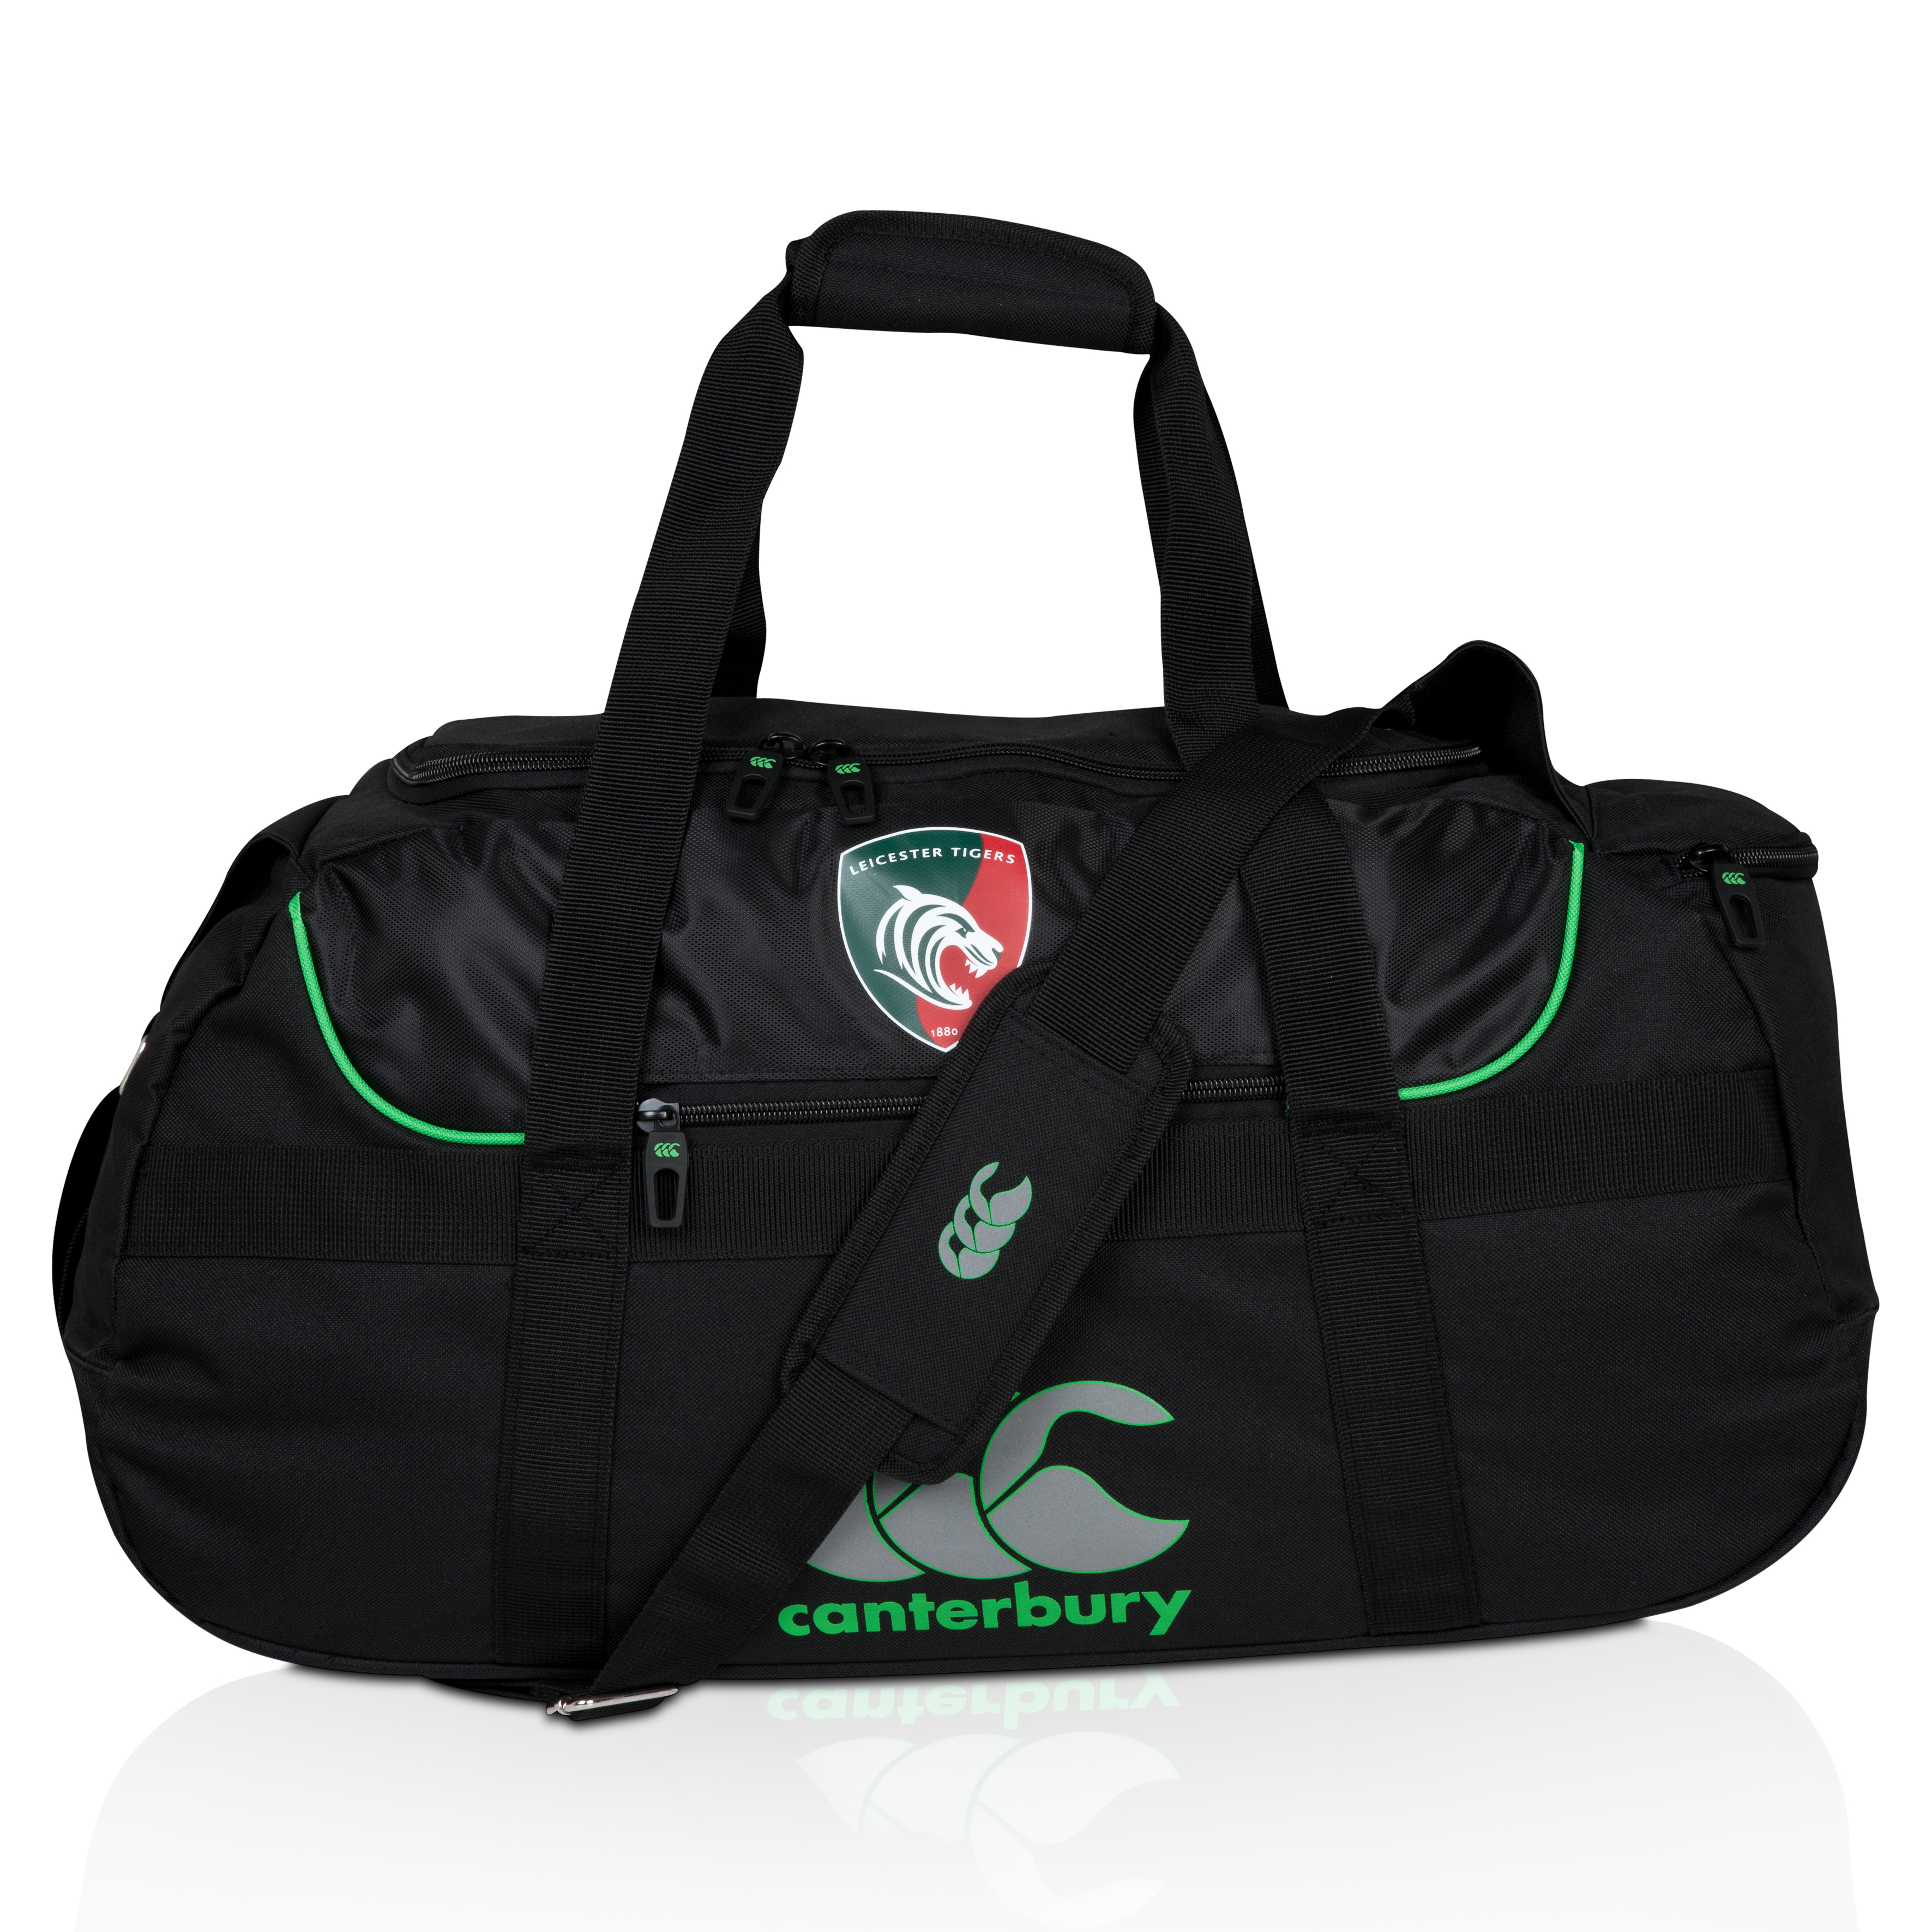 Leicester Tigers Medium Sportsbag Black